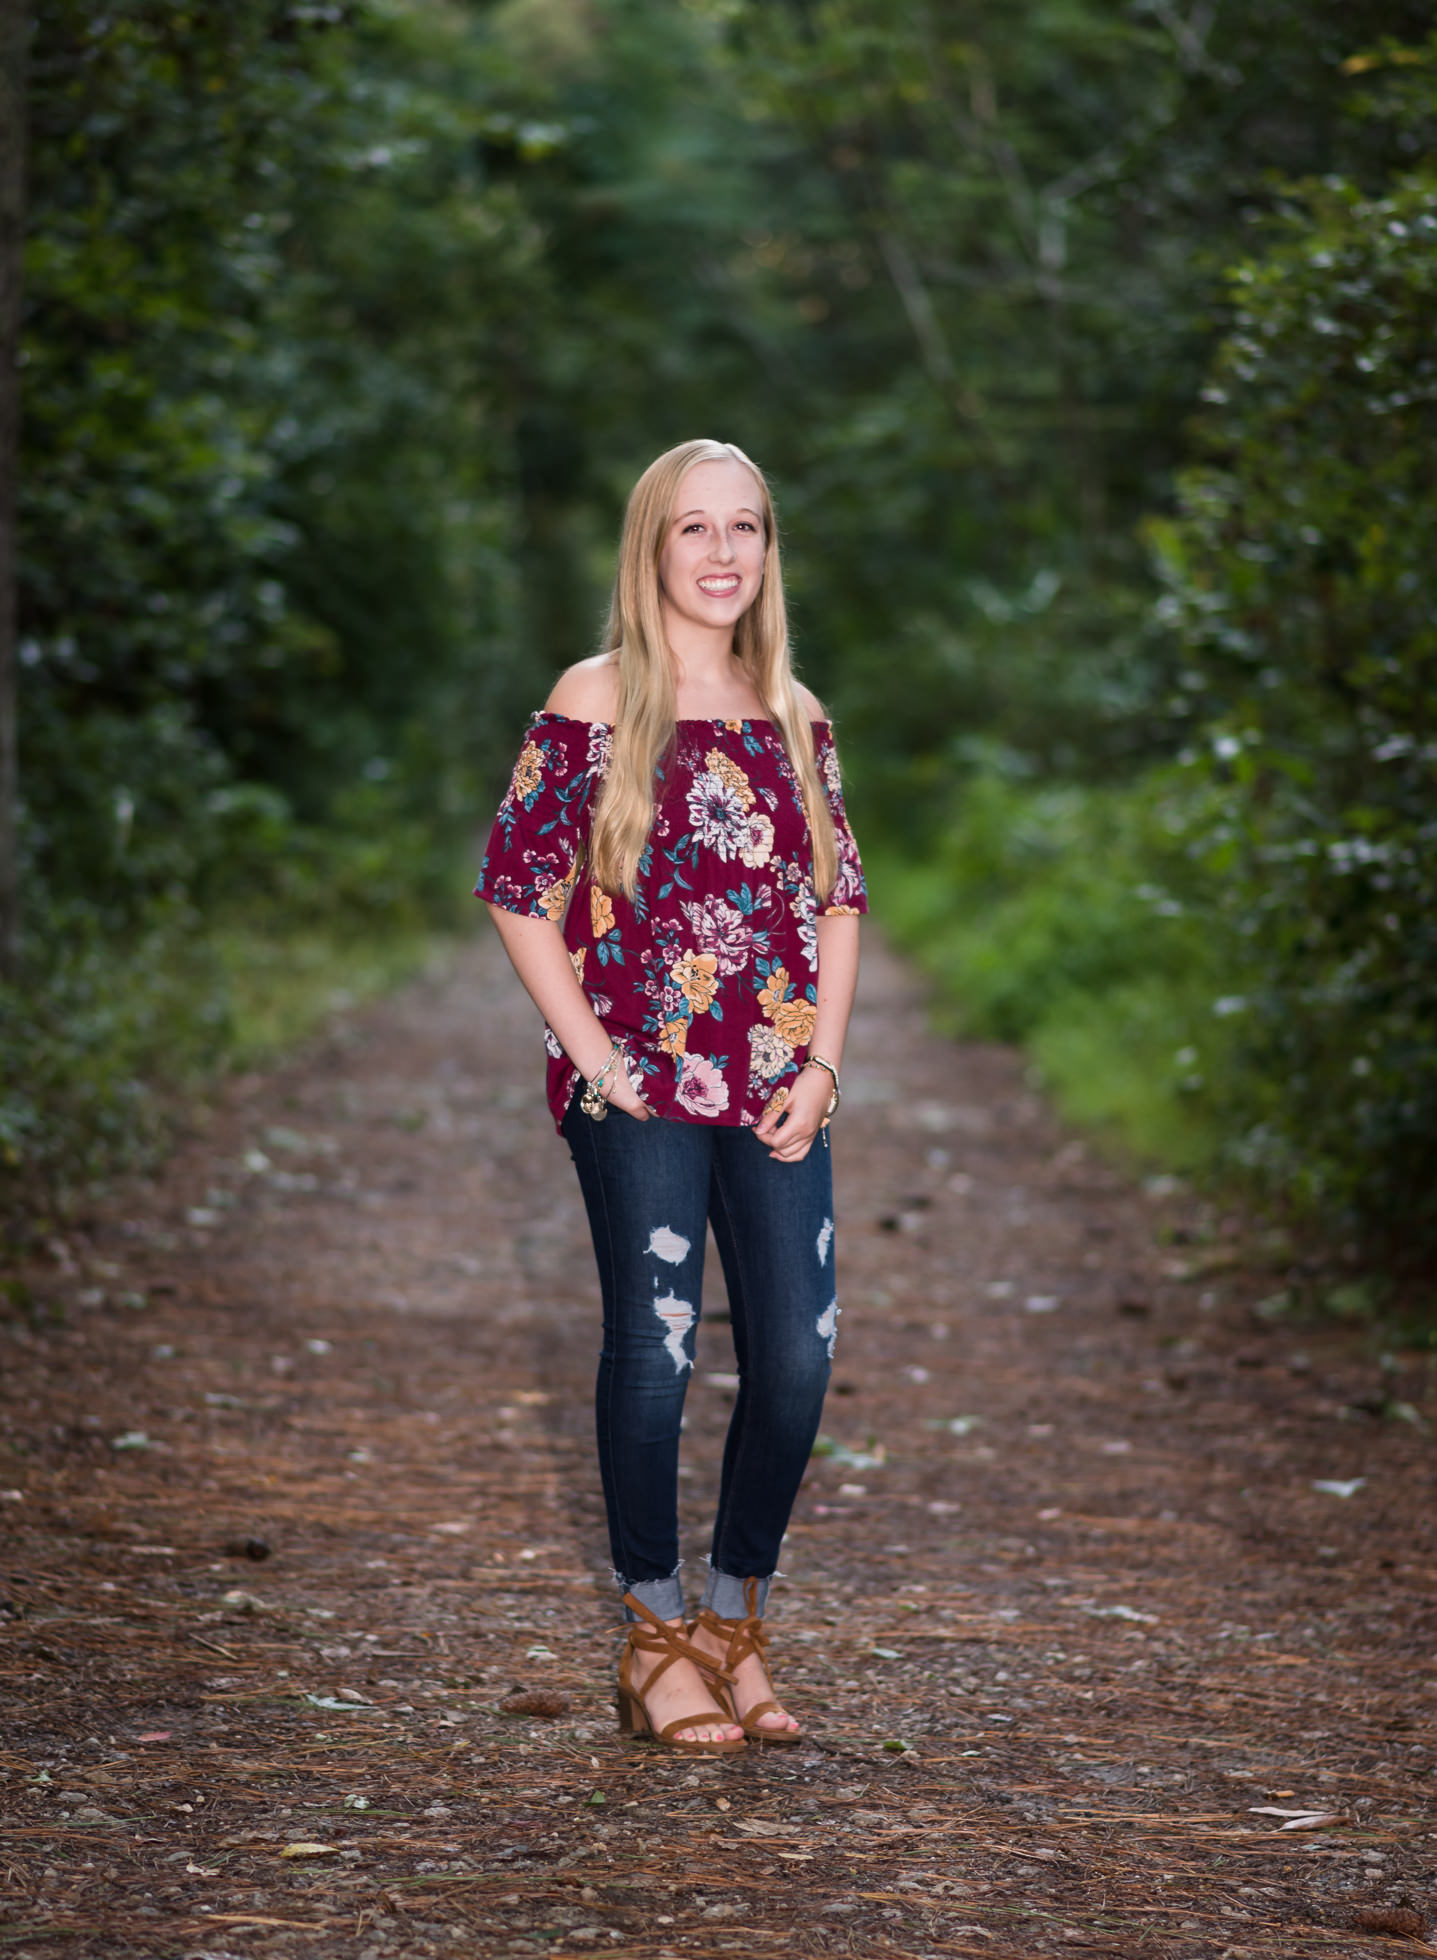 north end Virginia beach high school college senior portrait photographer